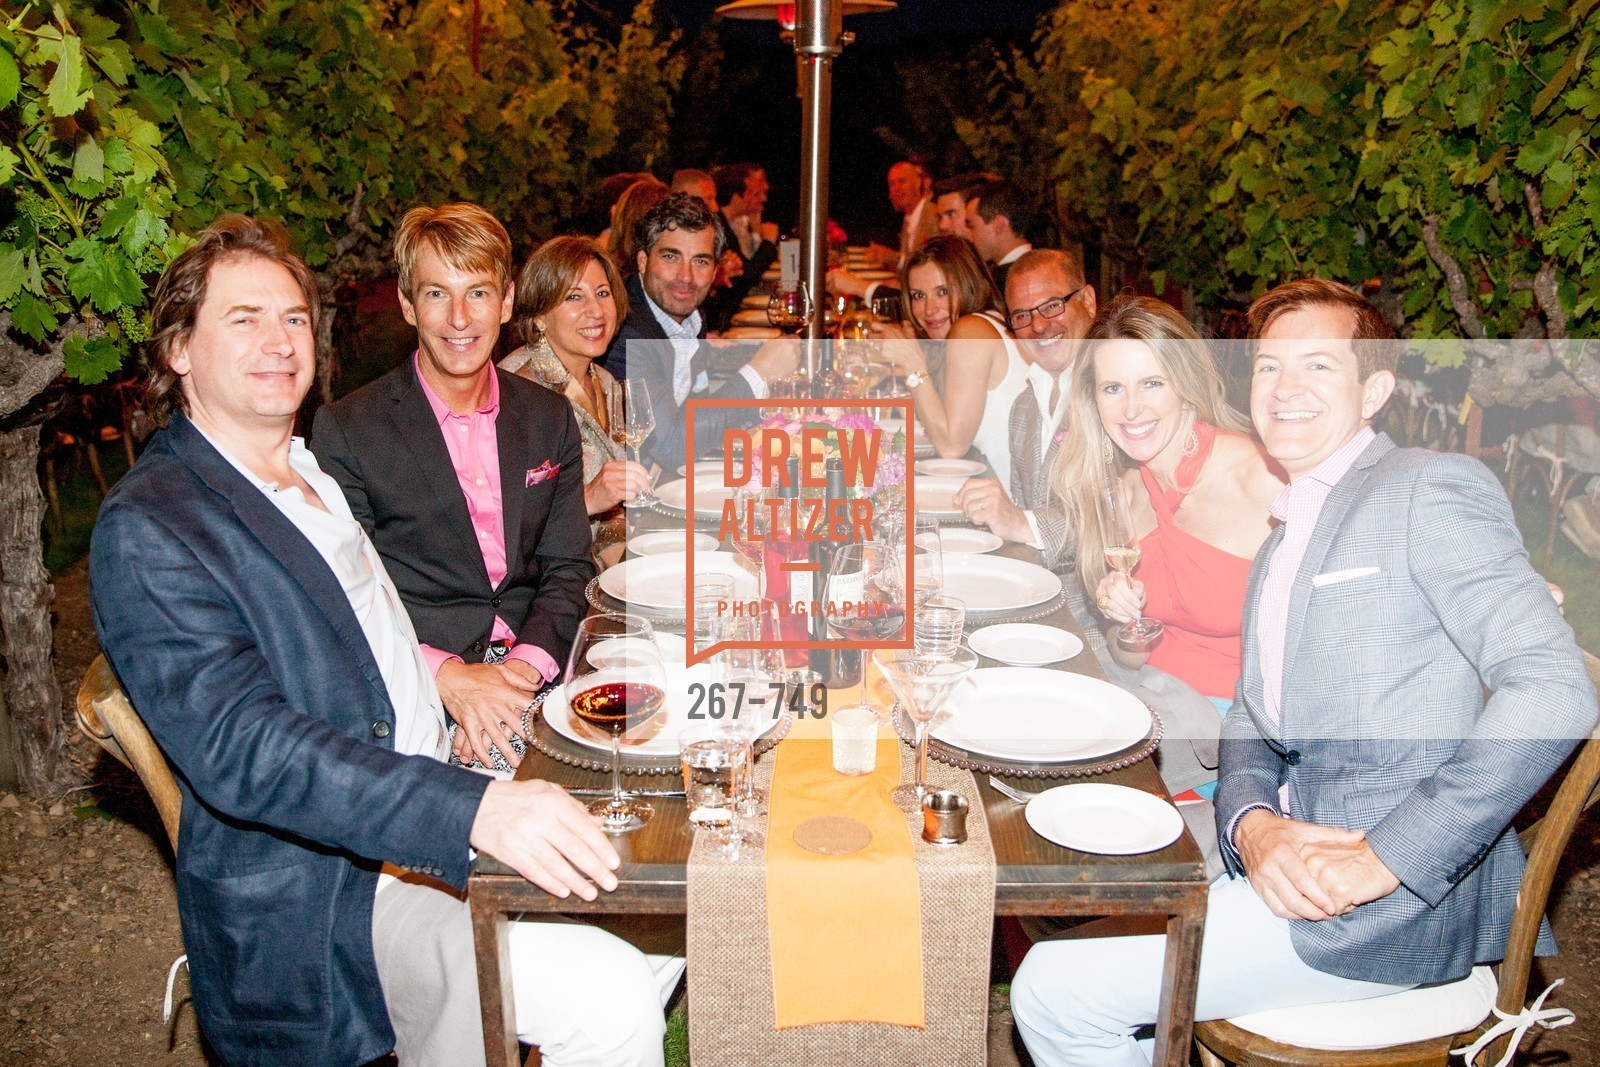 Rick Gerber, Jack Calhoun, Keith Ross, Claudia Ross, Steve Diglio, Audrey Gerber, Trent Norris, PETER COPPING Meets and Greets OSCAR DELA RENTA Clients and Associates at NEIMAN MARCUS, US, May 23rd, 2015,Drew Altizer, Drew Altizer Photography, full-service agency, private events, San Francisco photographer, photographer california